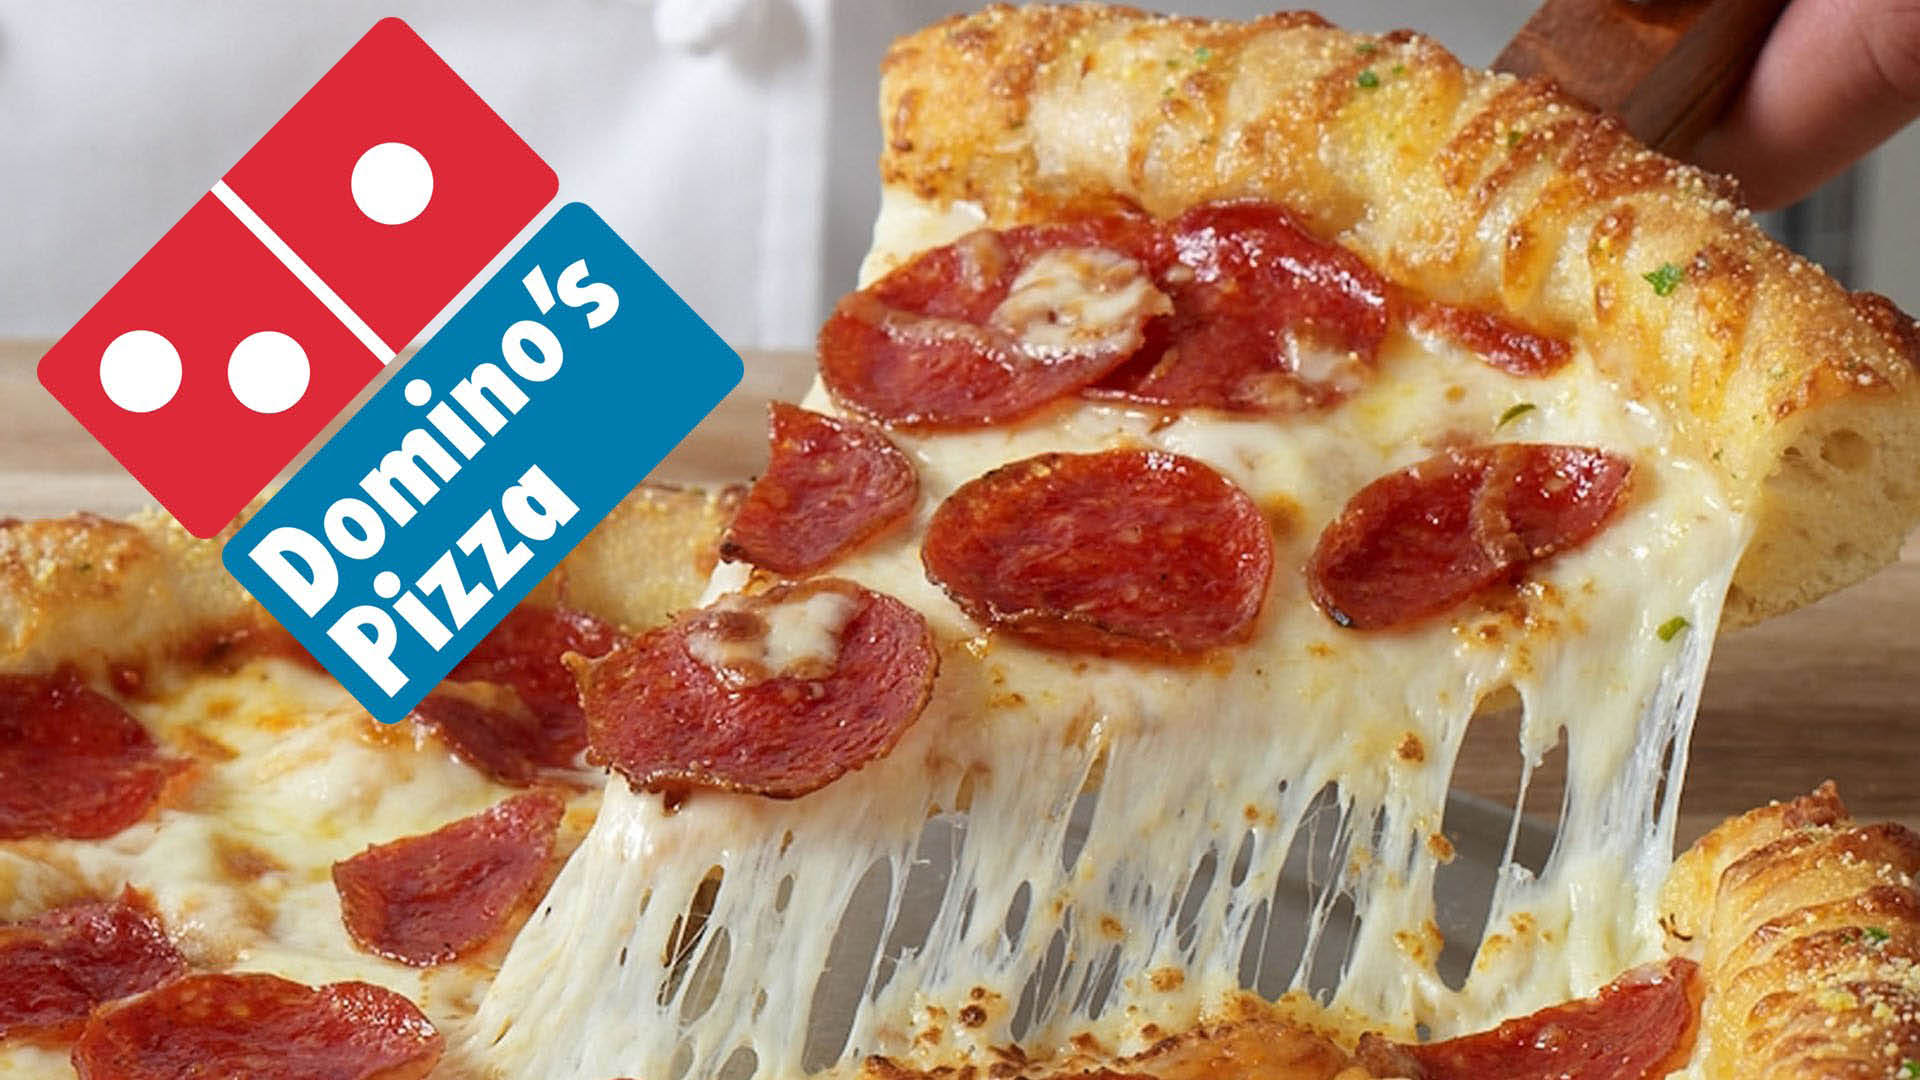 pizza deals, pizza coupons, pizza delivery, pizza near me